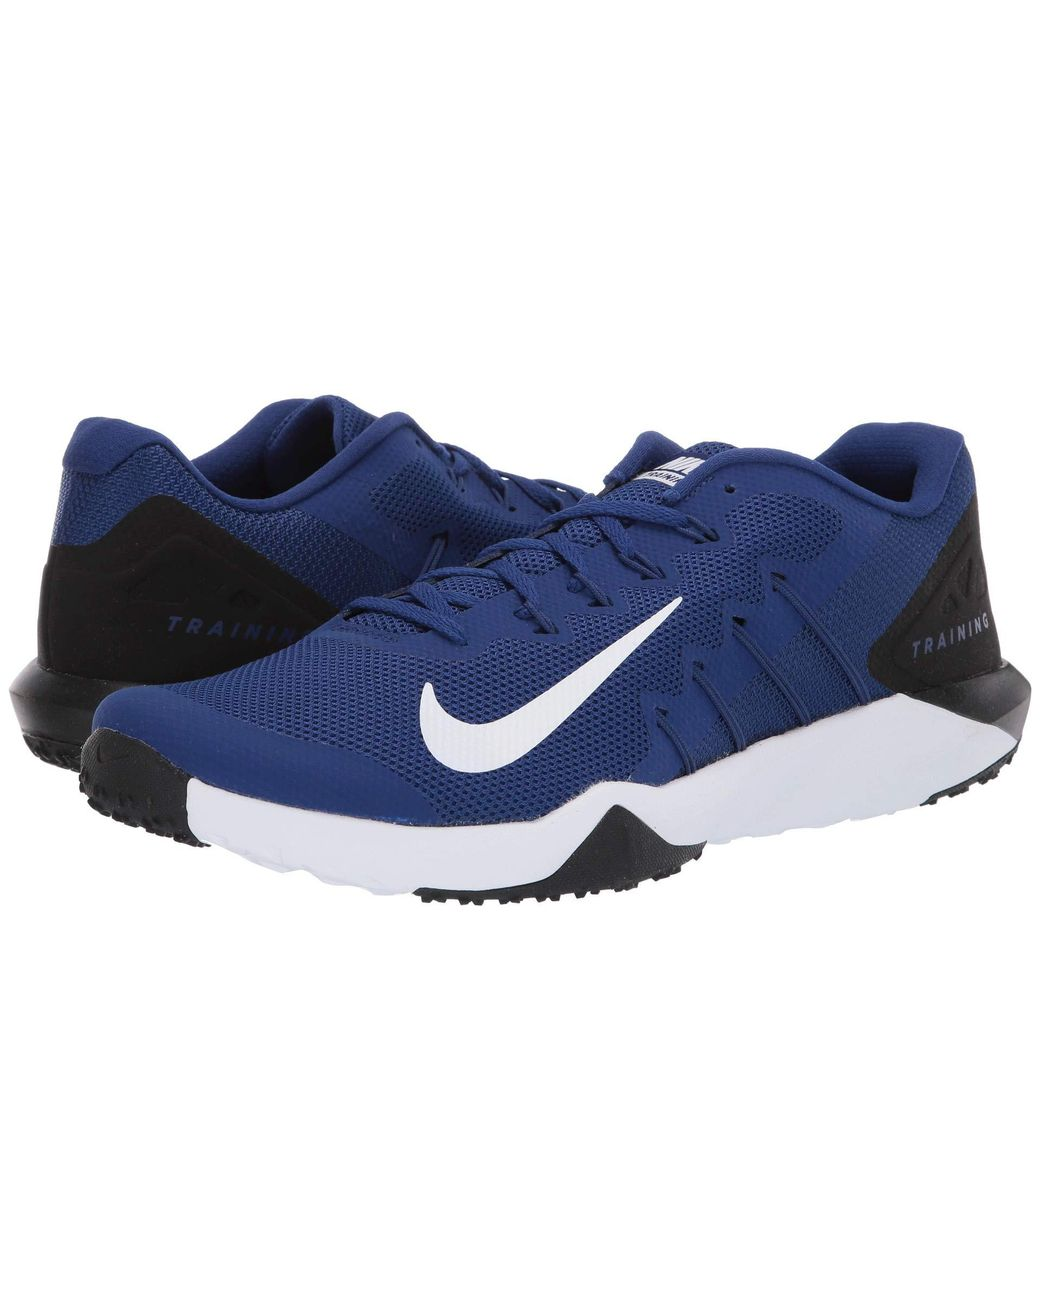 premium selection aa874 865e5 Nike Retaliation Trainer 2 in Blue for Men - Save 27% - Lyst